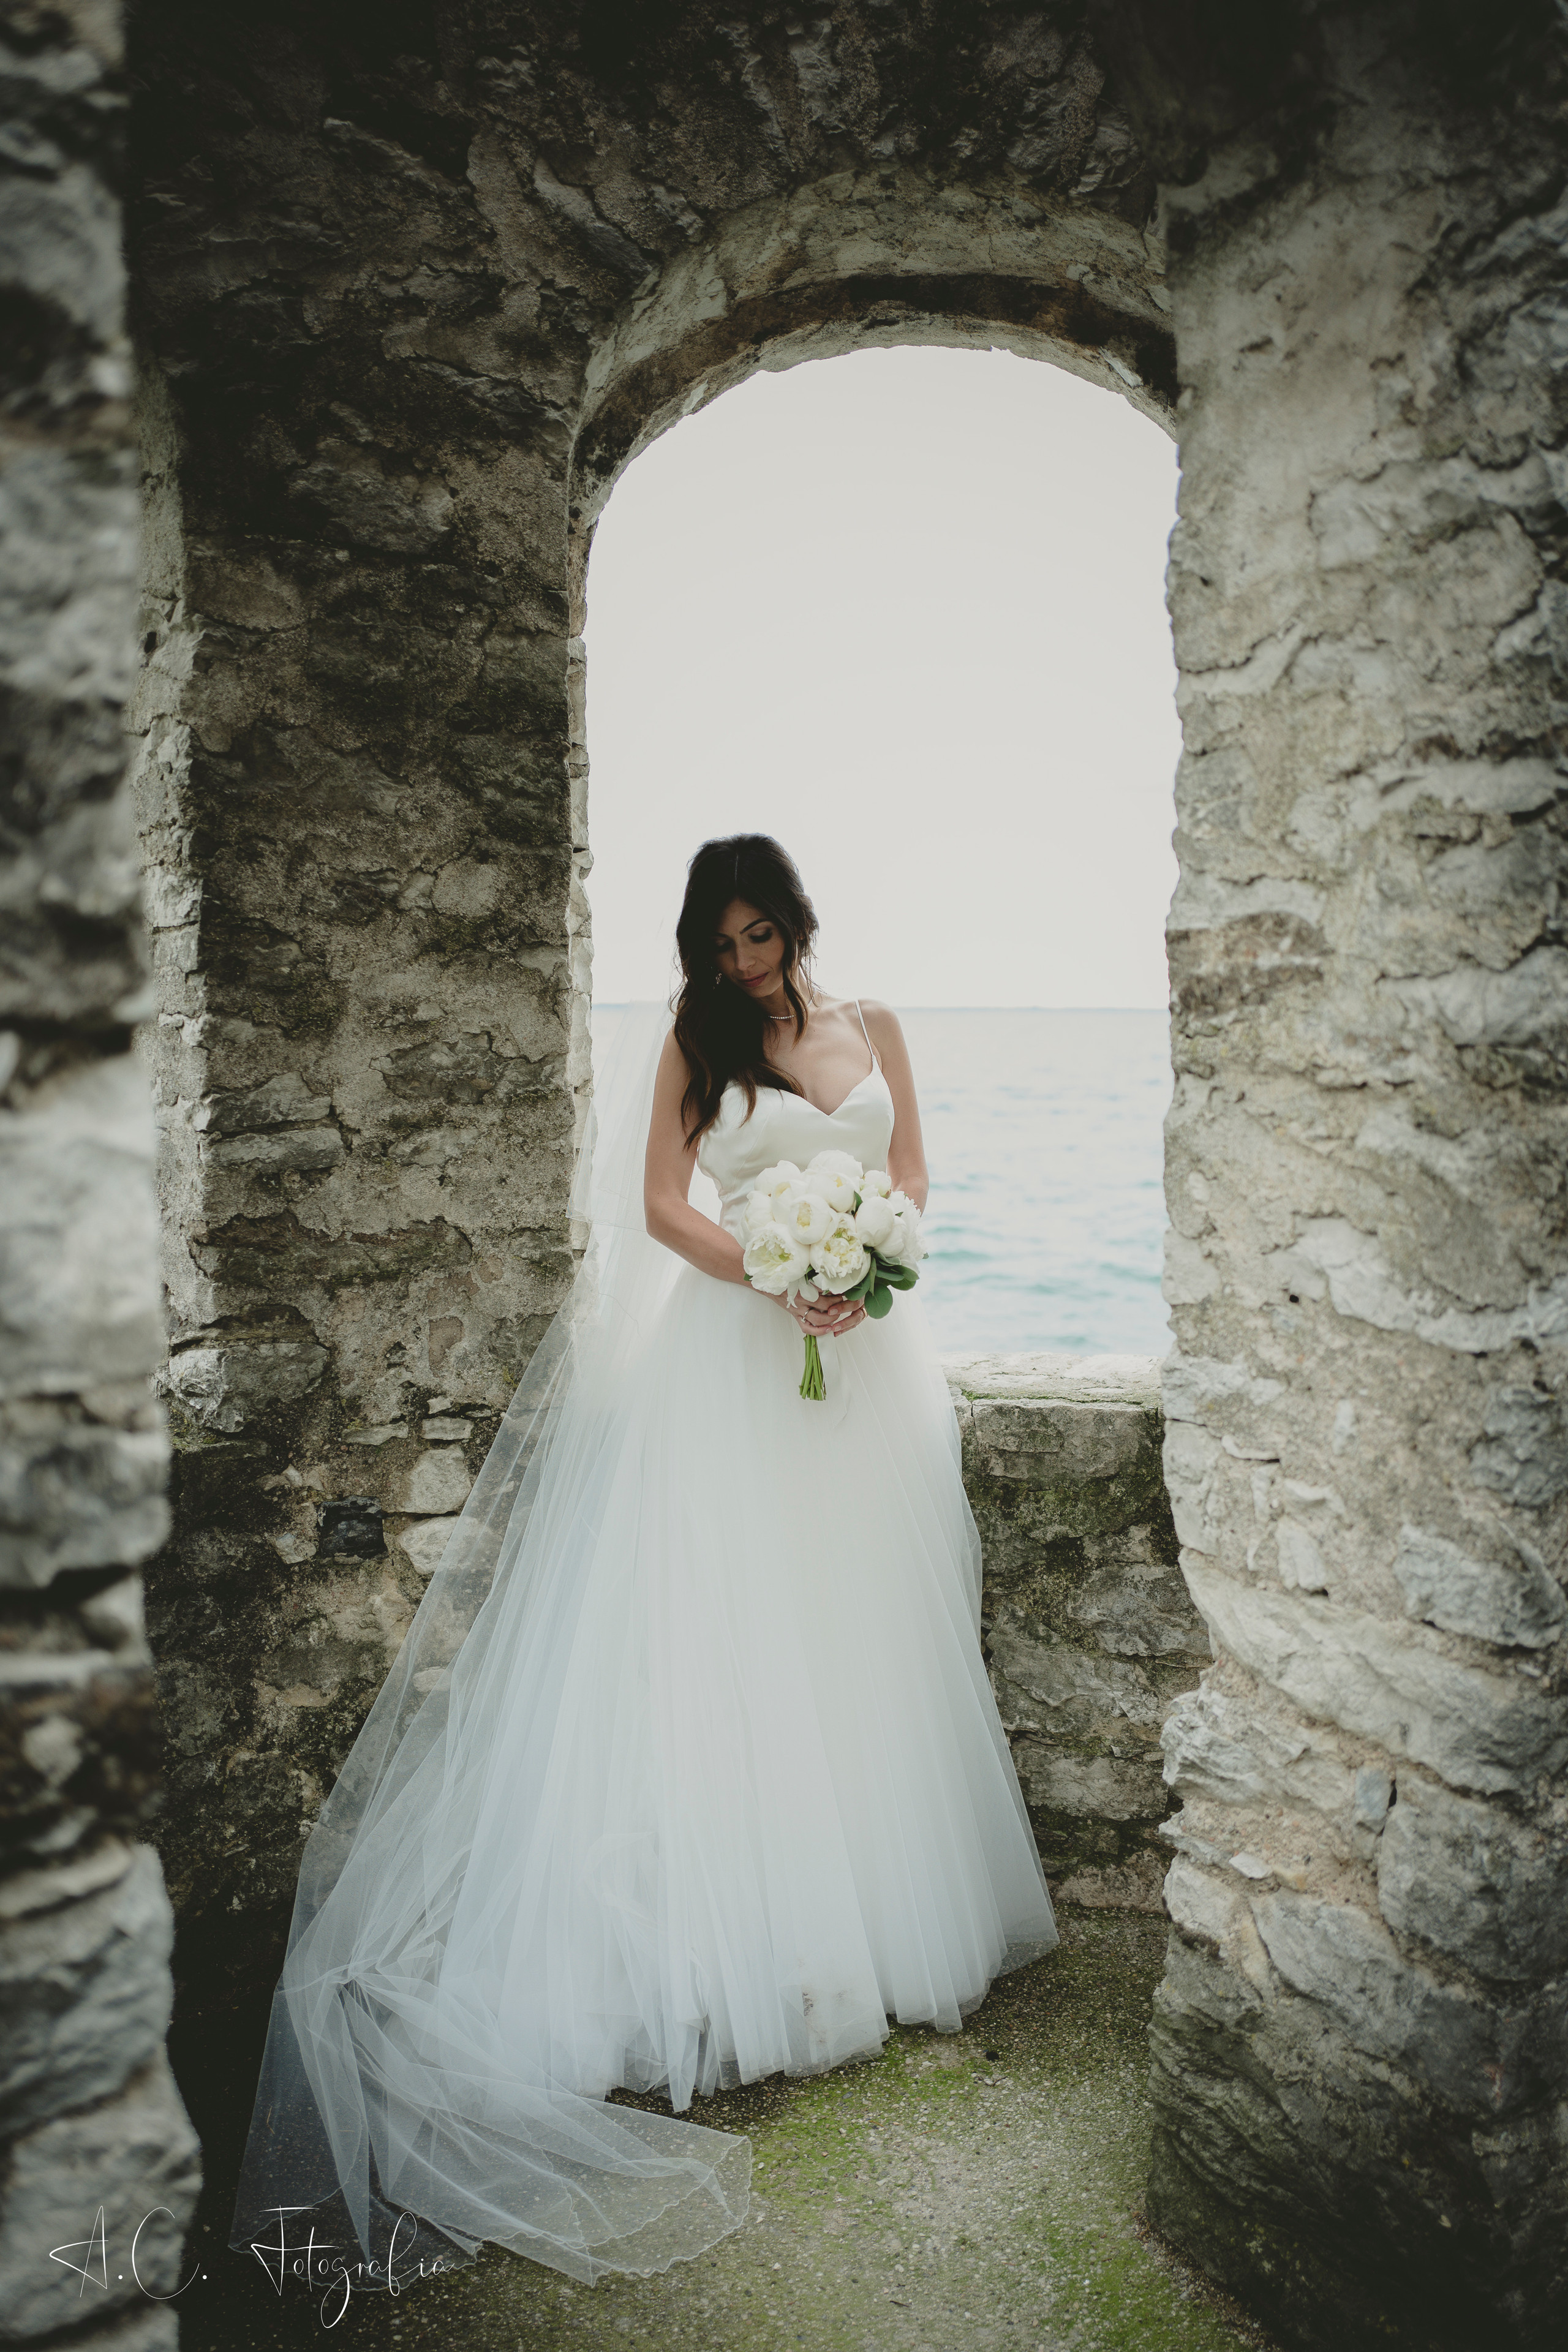 Beautiful bride portrait with Leica q